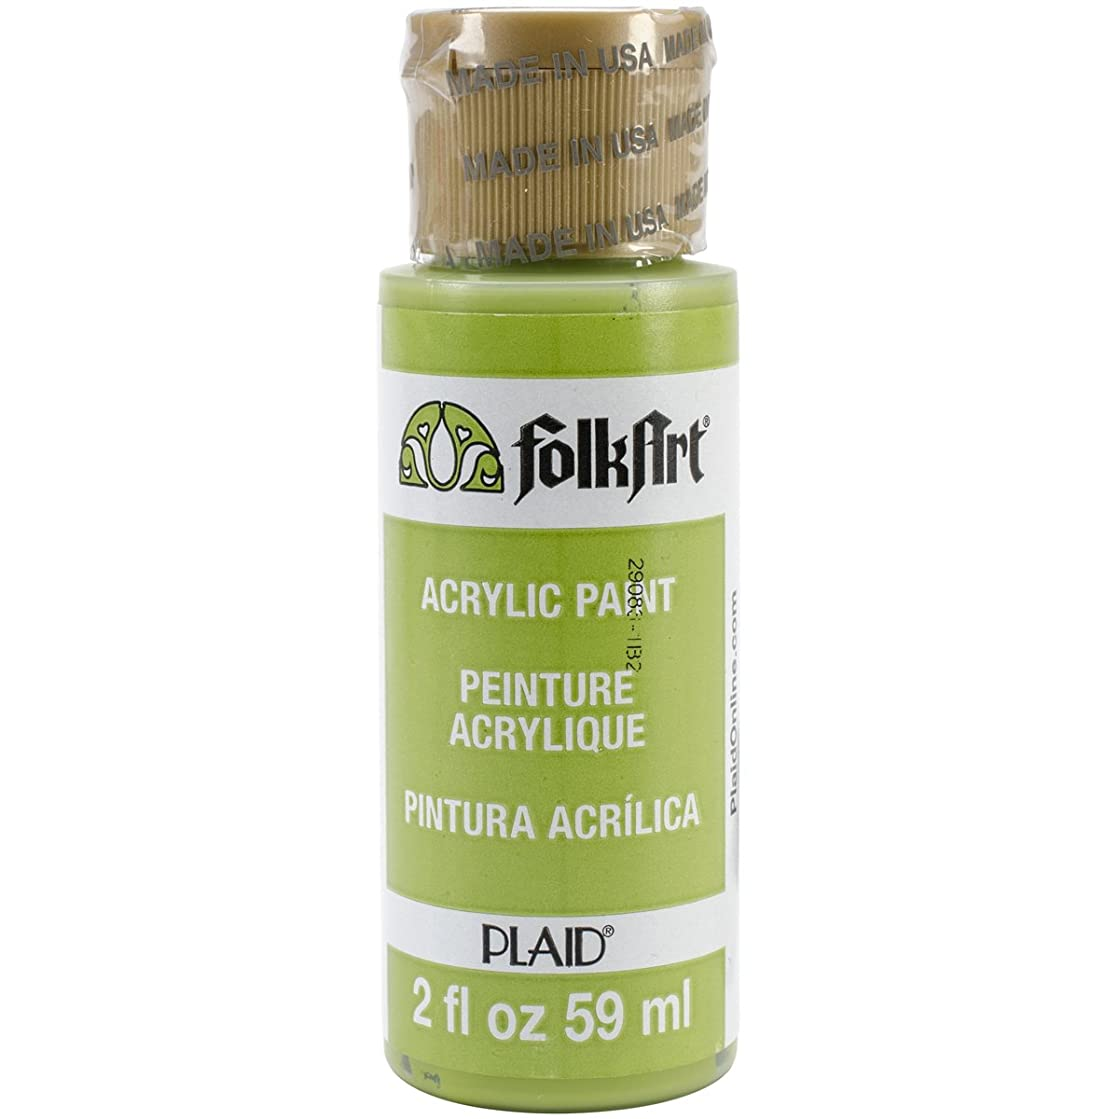 FolkArt Acrylic Paint in Assorted Colors (2 oz), 2552, Citrus Green